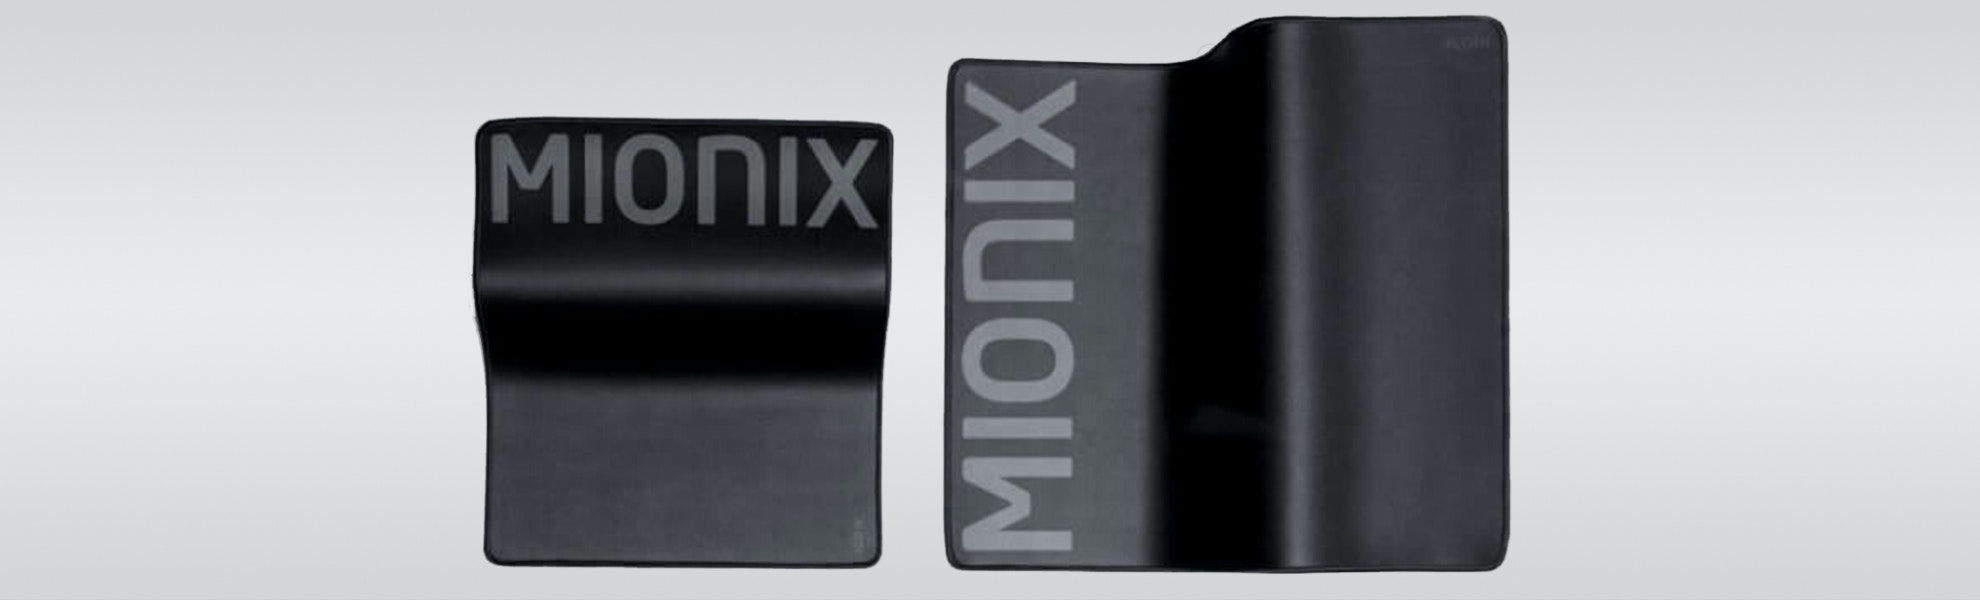 Mionix Alioth Stitched Microfiber Mouse Pads